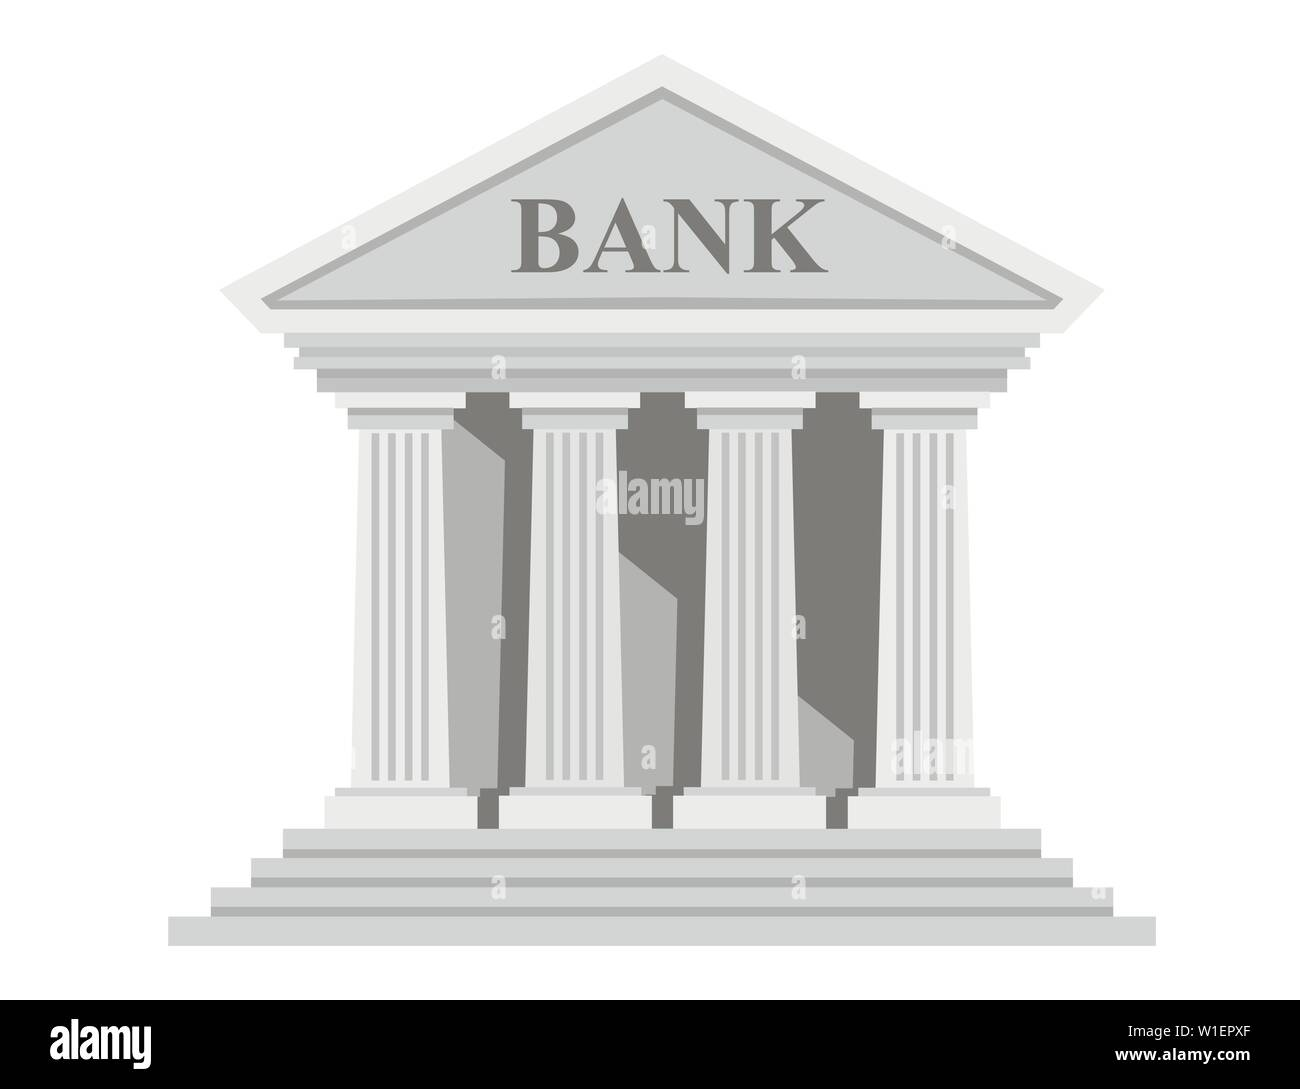 Retro Bank Design.Flat Design Retro Bank Building With Columns Without Windows